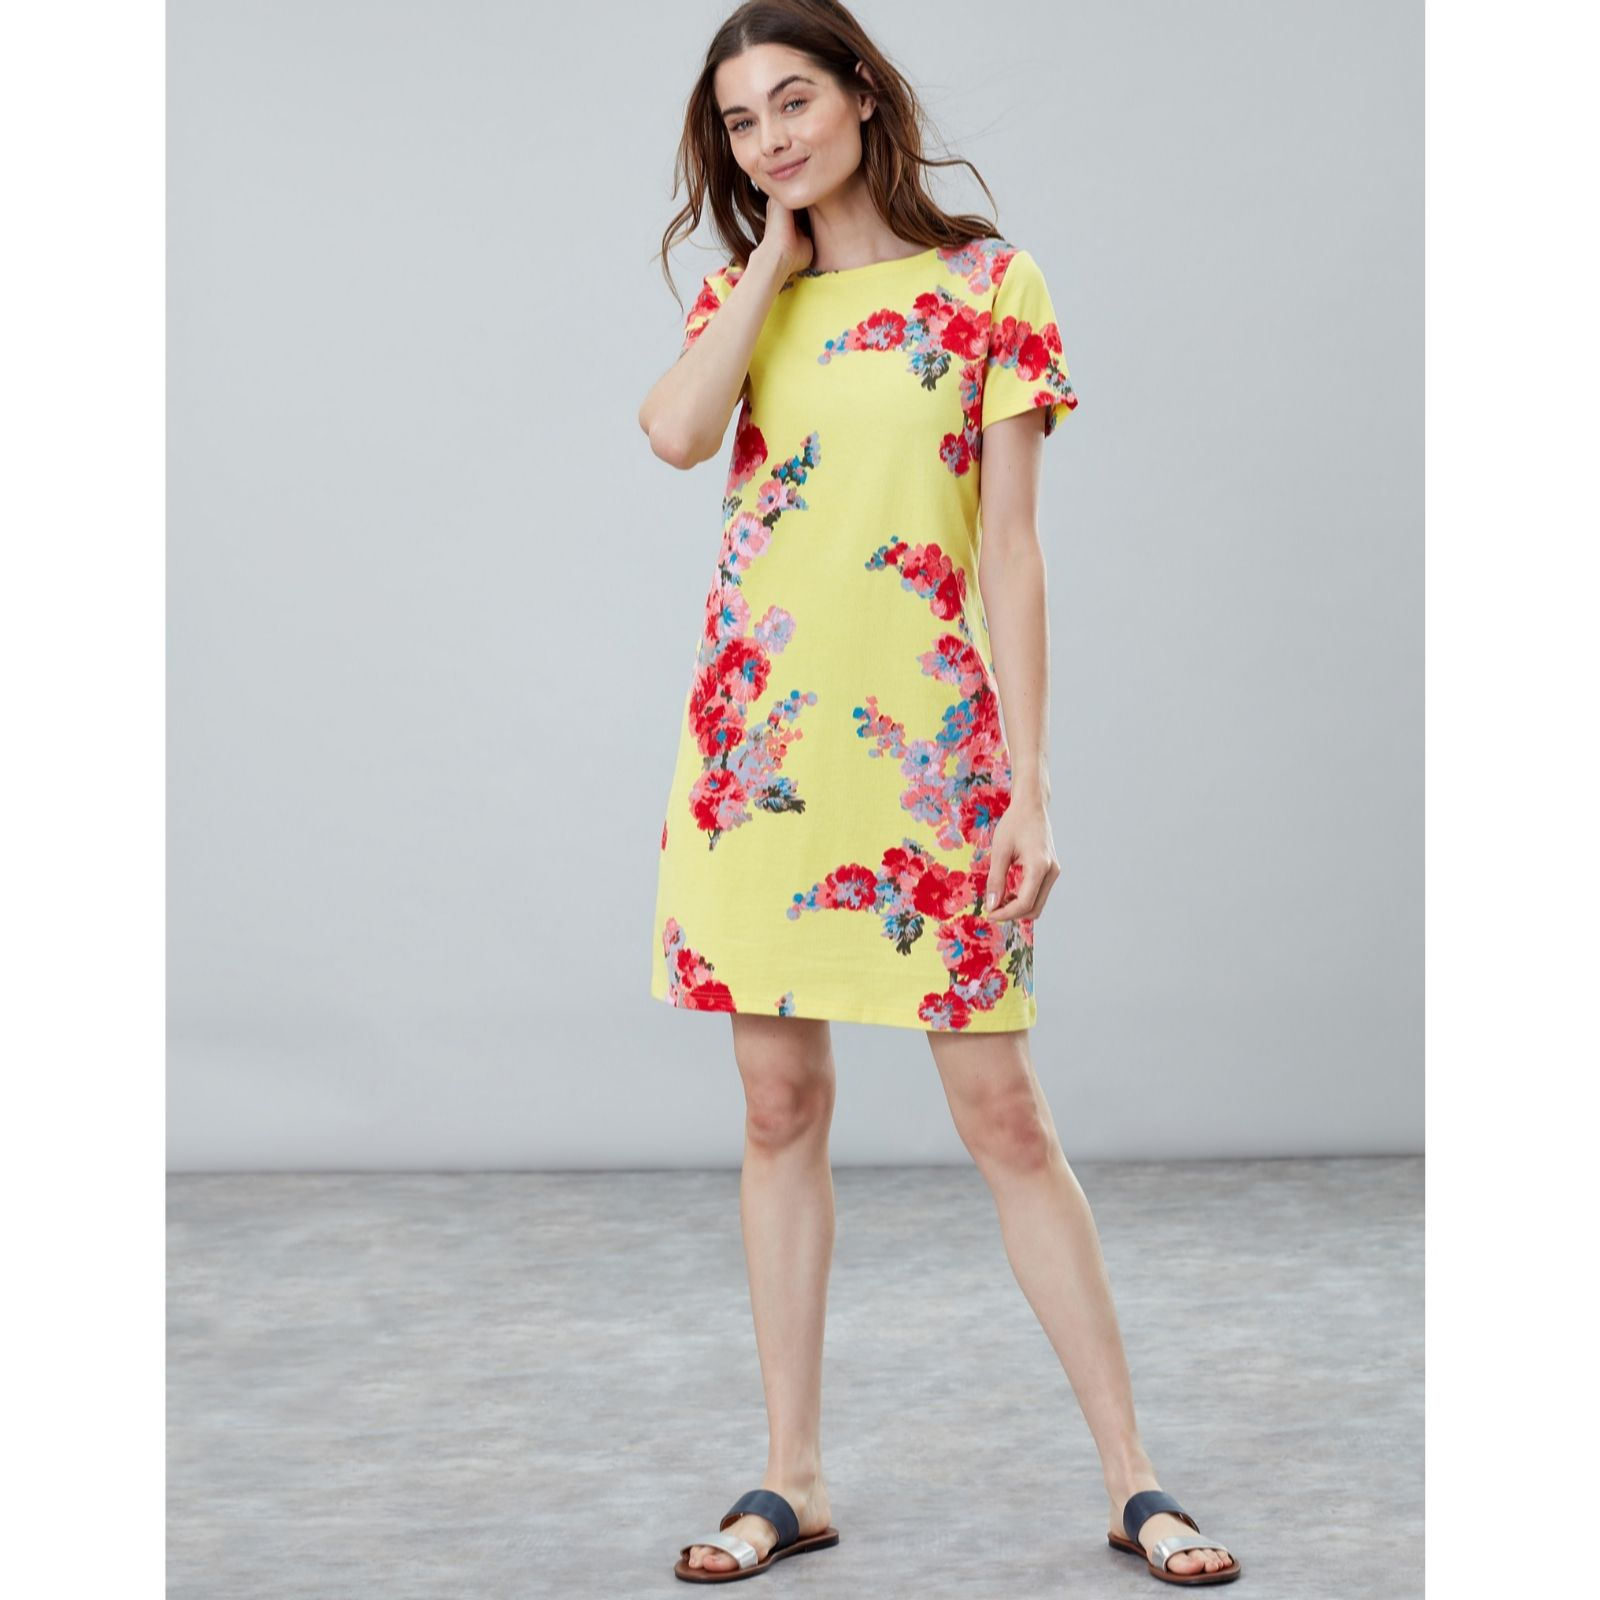 ebf1289030a2 Joules Short Sleeve Riviera Border Print Dress - QVC UK